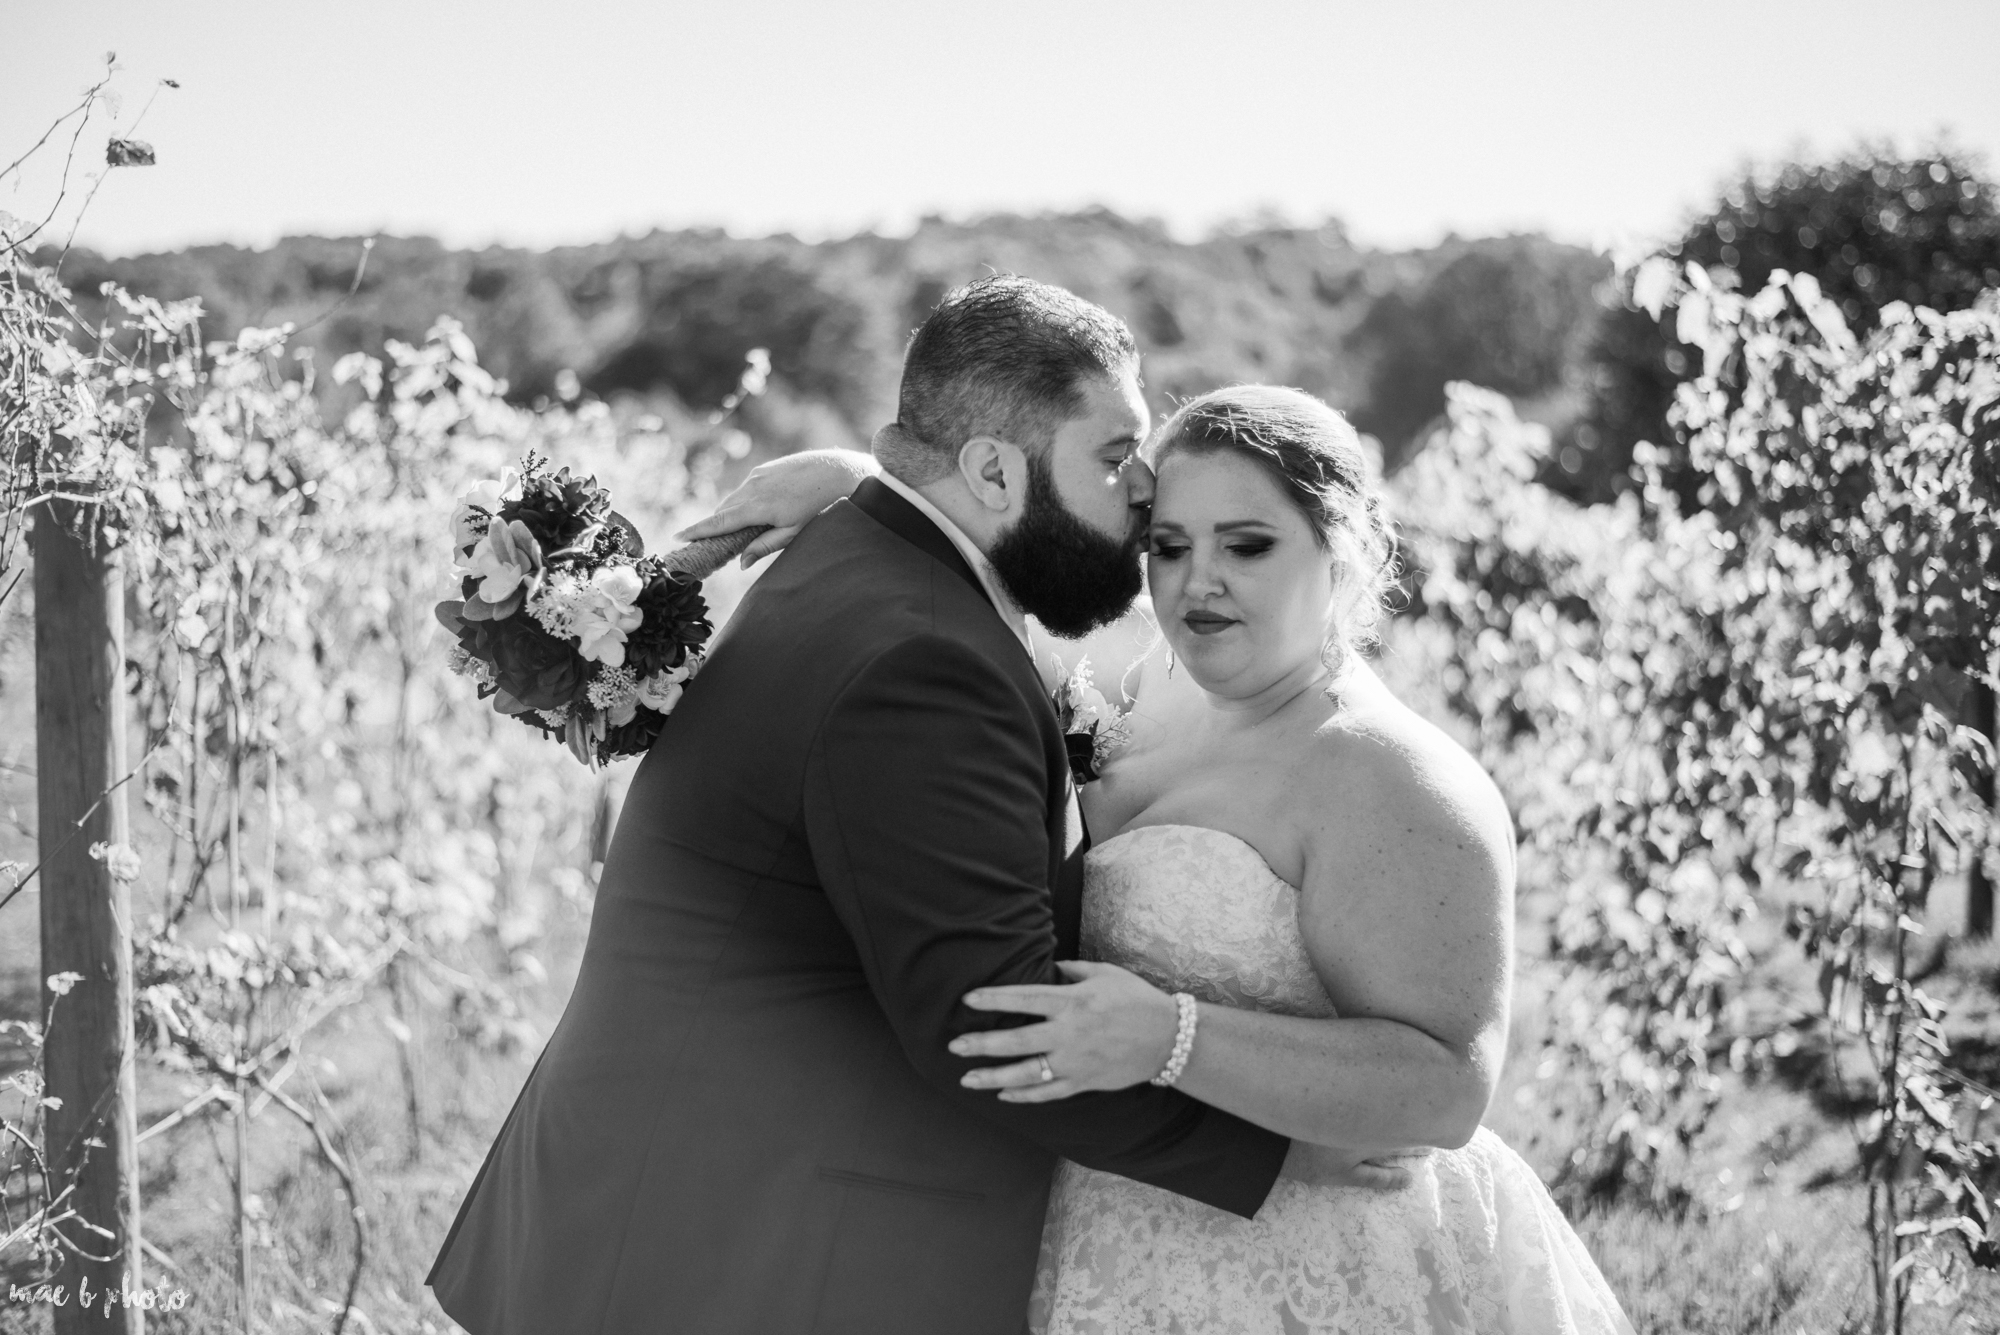 Amber & Kyle's Rustic Barn Wedding at SNPJ in Enon Valley, PA by Mae B Photo-69.jpg